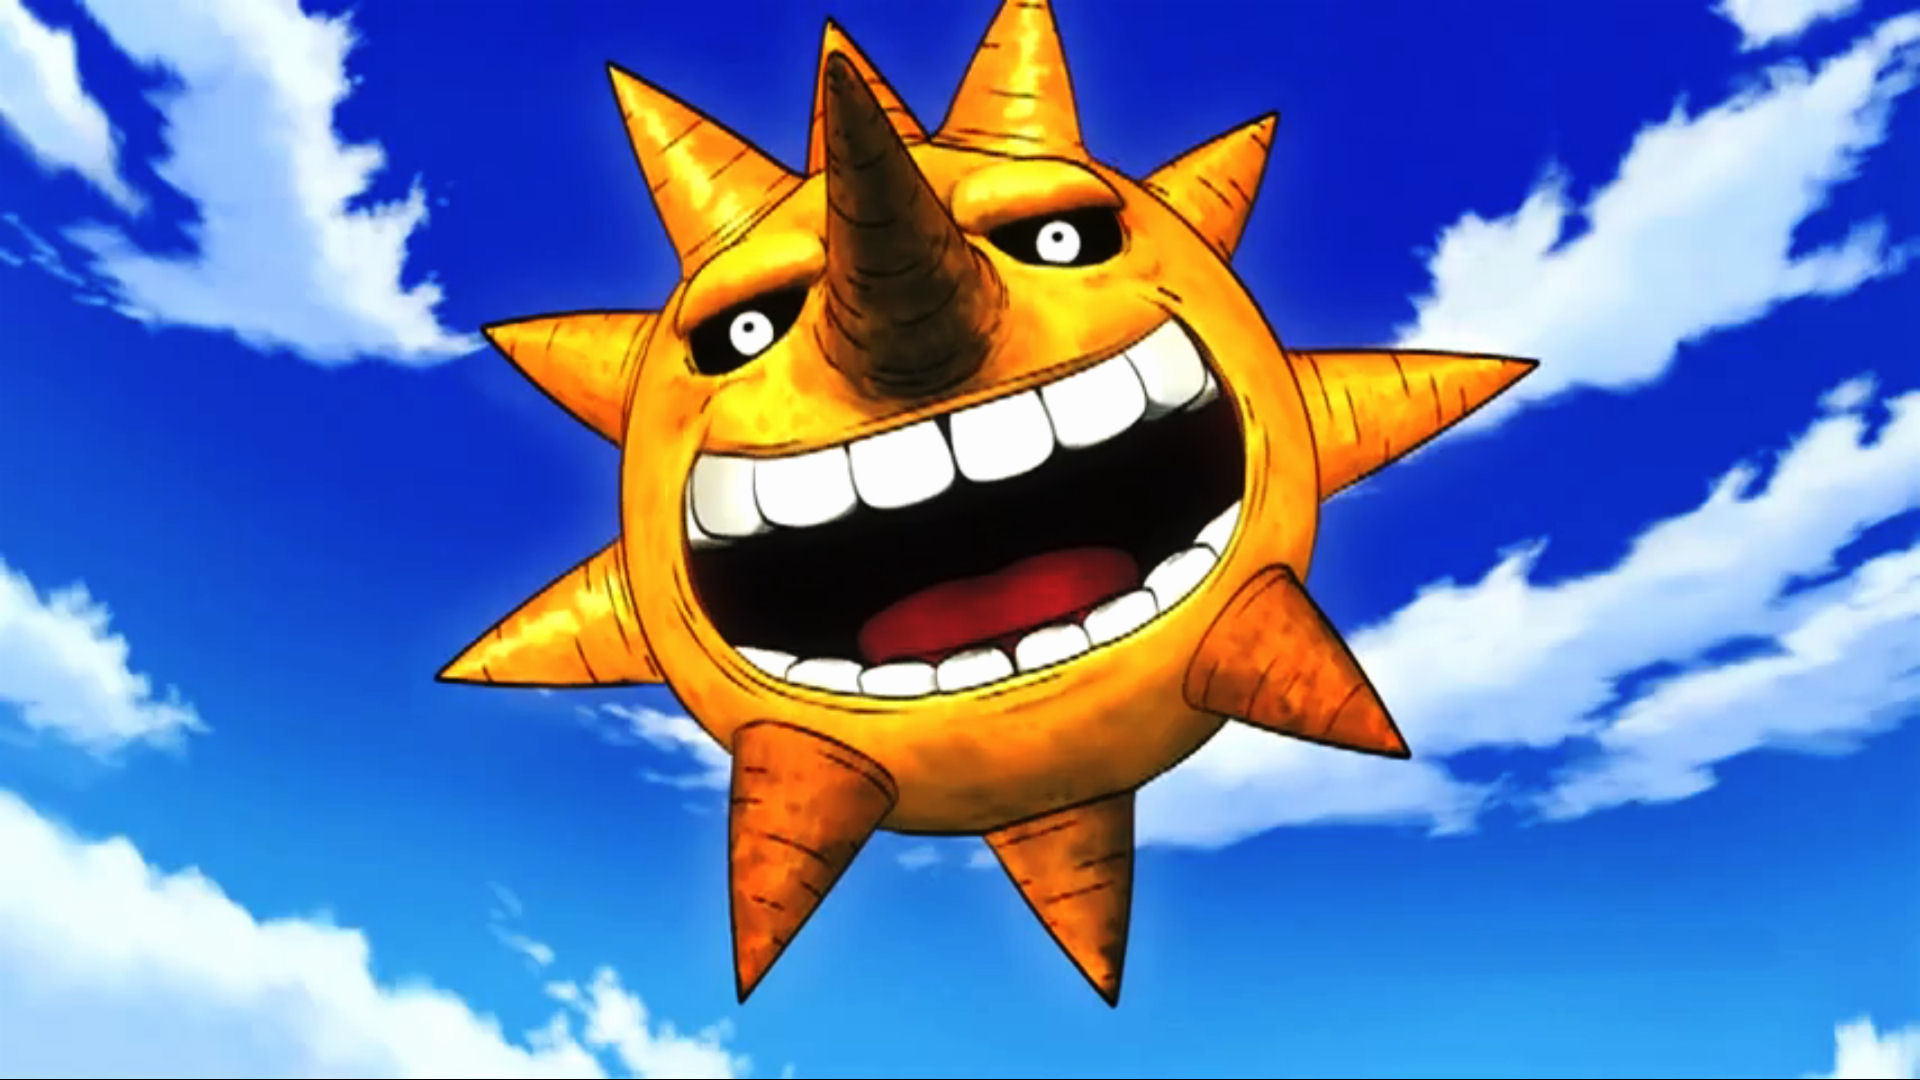 Soul eater moon and sun wallpapers